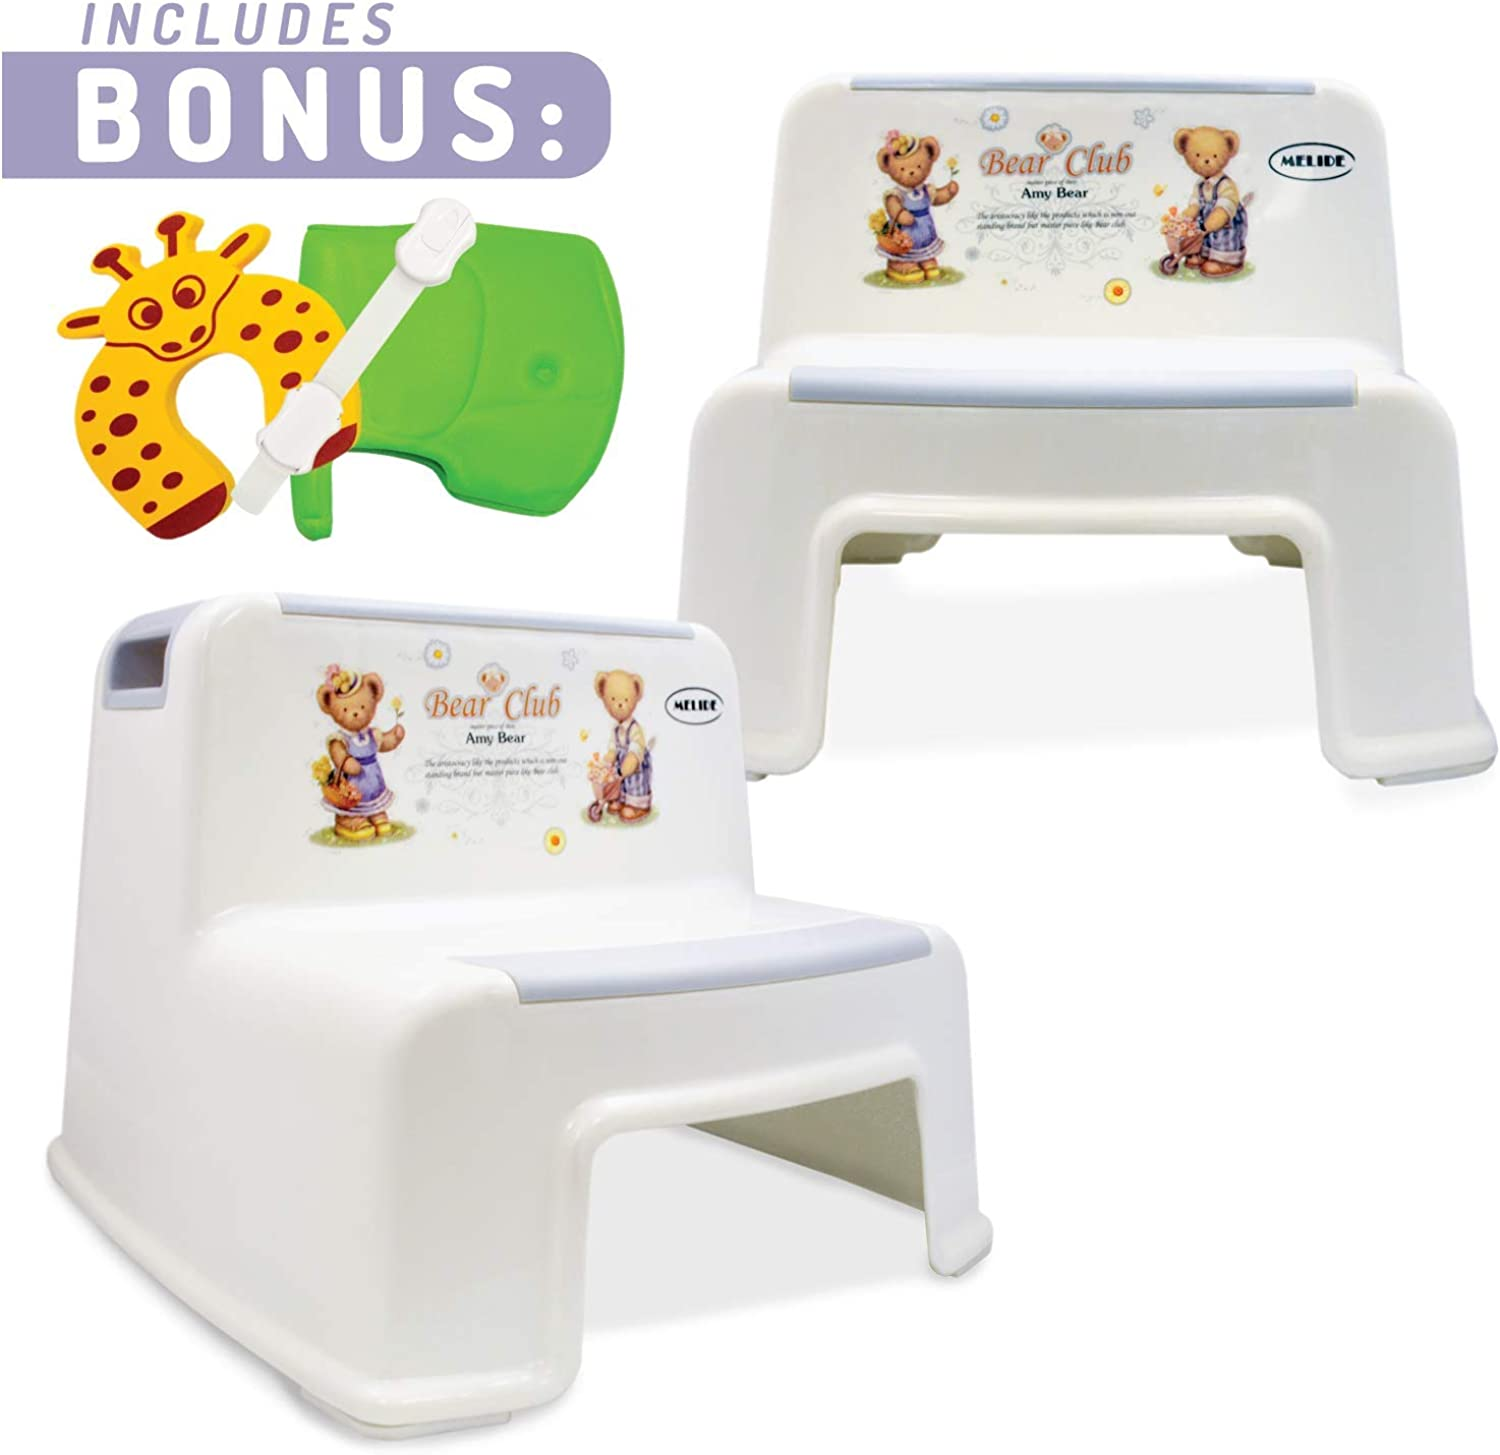 2 Step Stool For Kids (2 Pack)  Toddler Stool For Toilet and Potty Training with Slip Resistant and Soft Grip For Comfort   Dual Height and Wide Steps For Use in the Bathroom and Kitchen By MeliDe